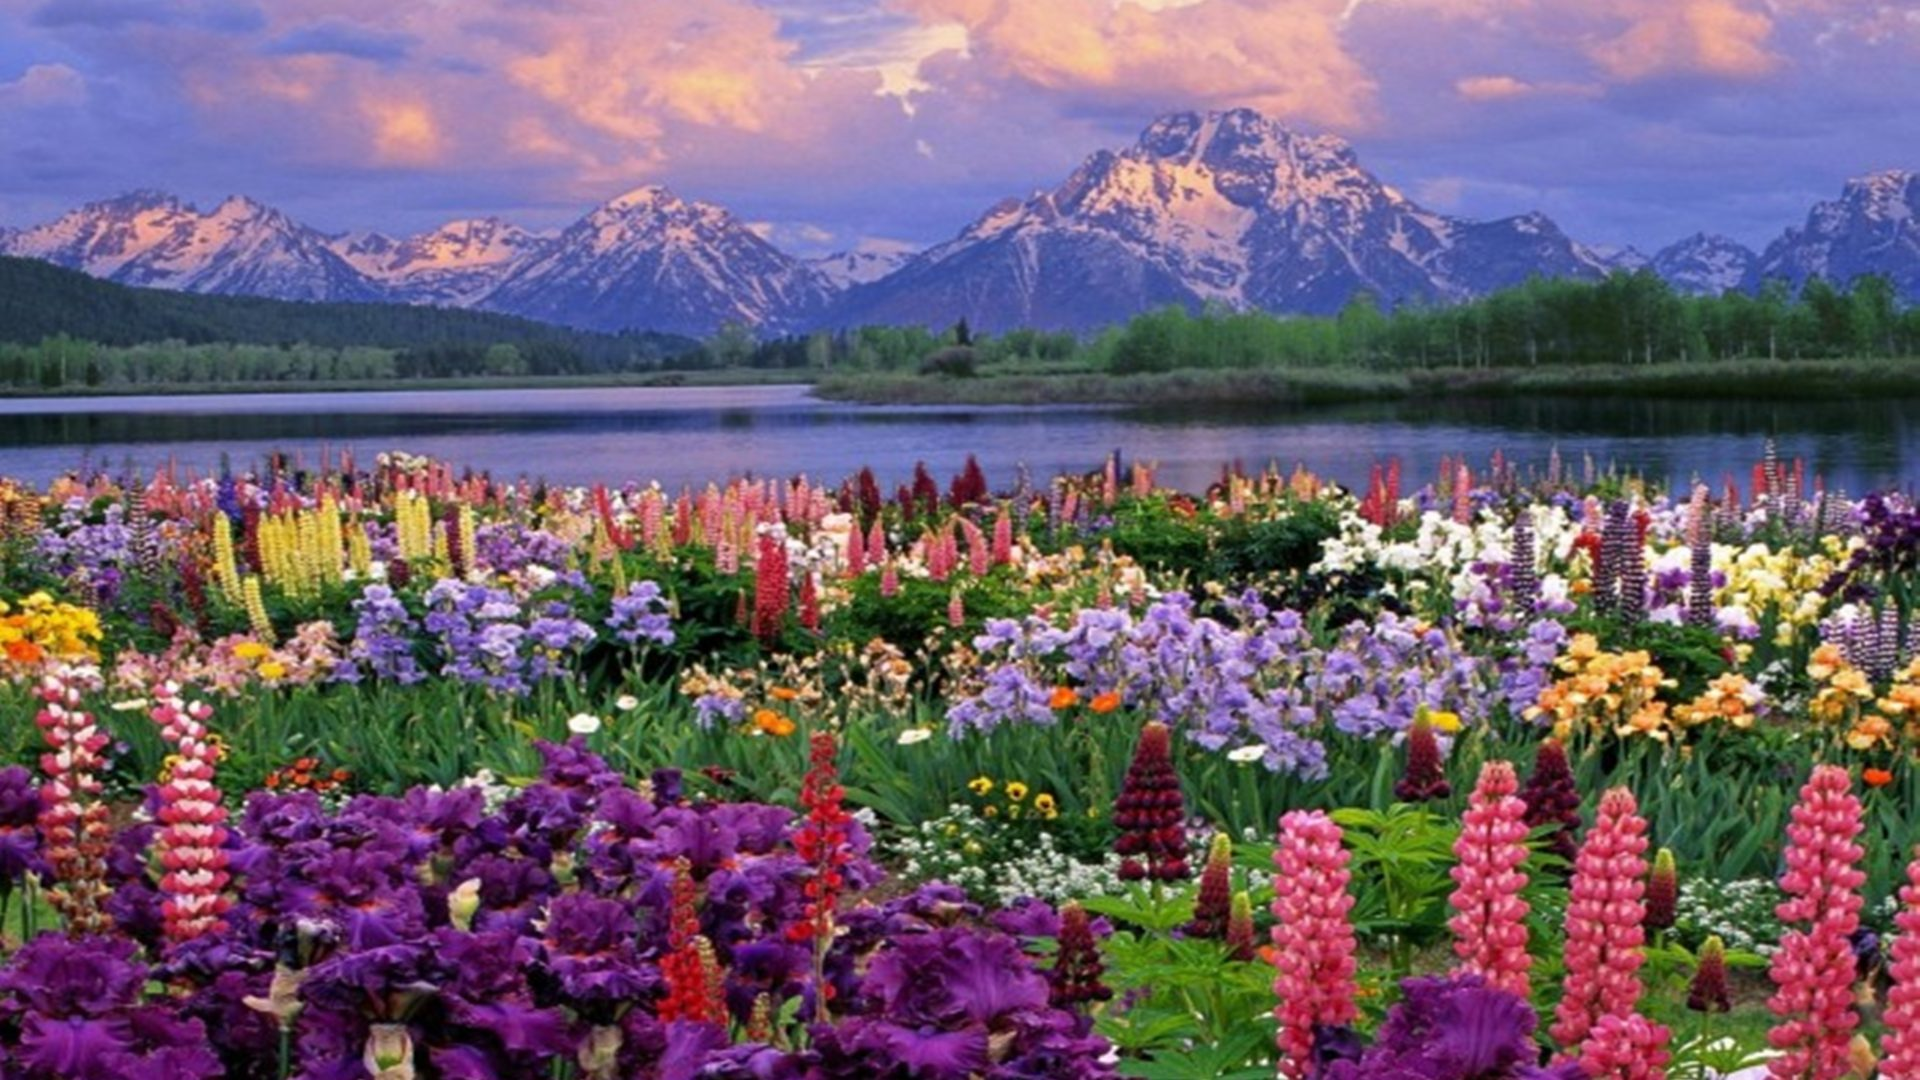 Free Android Fall Wallpaper Mountains Landscapes Flowers Garden Scenic Lakes